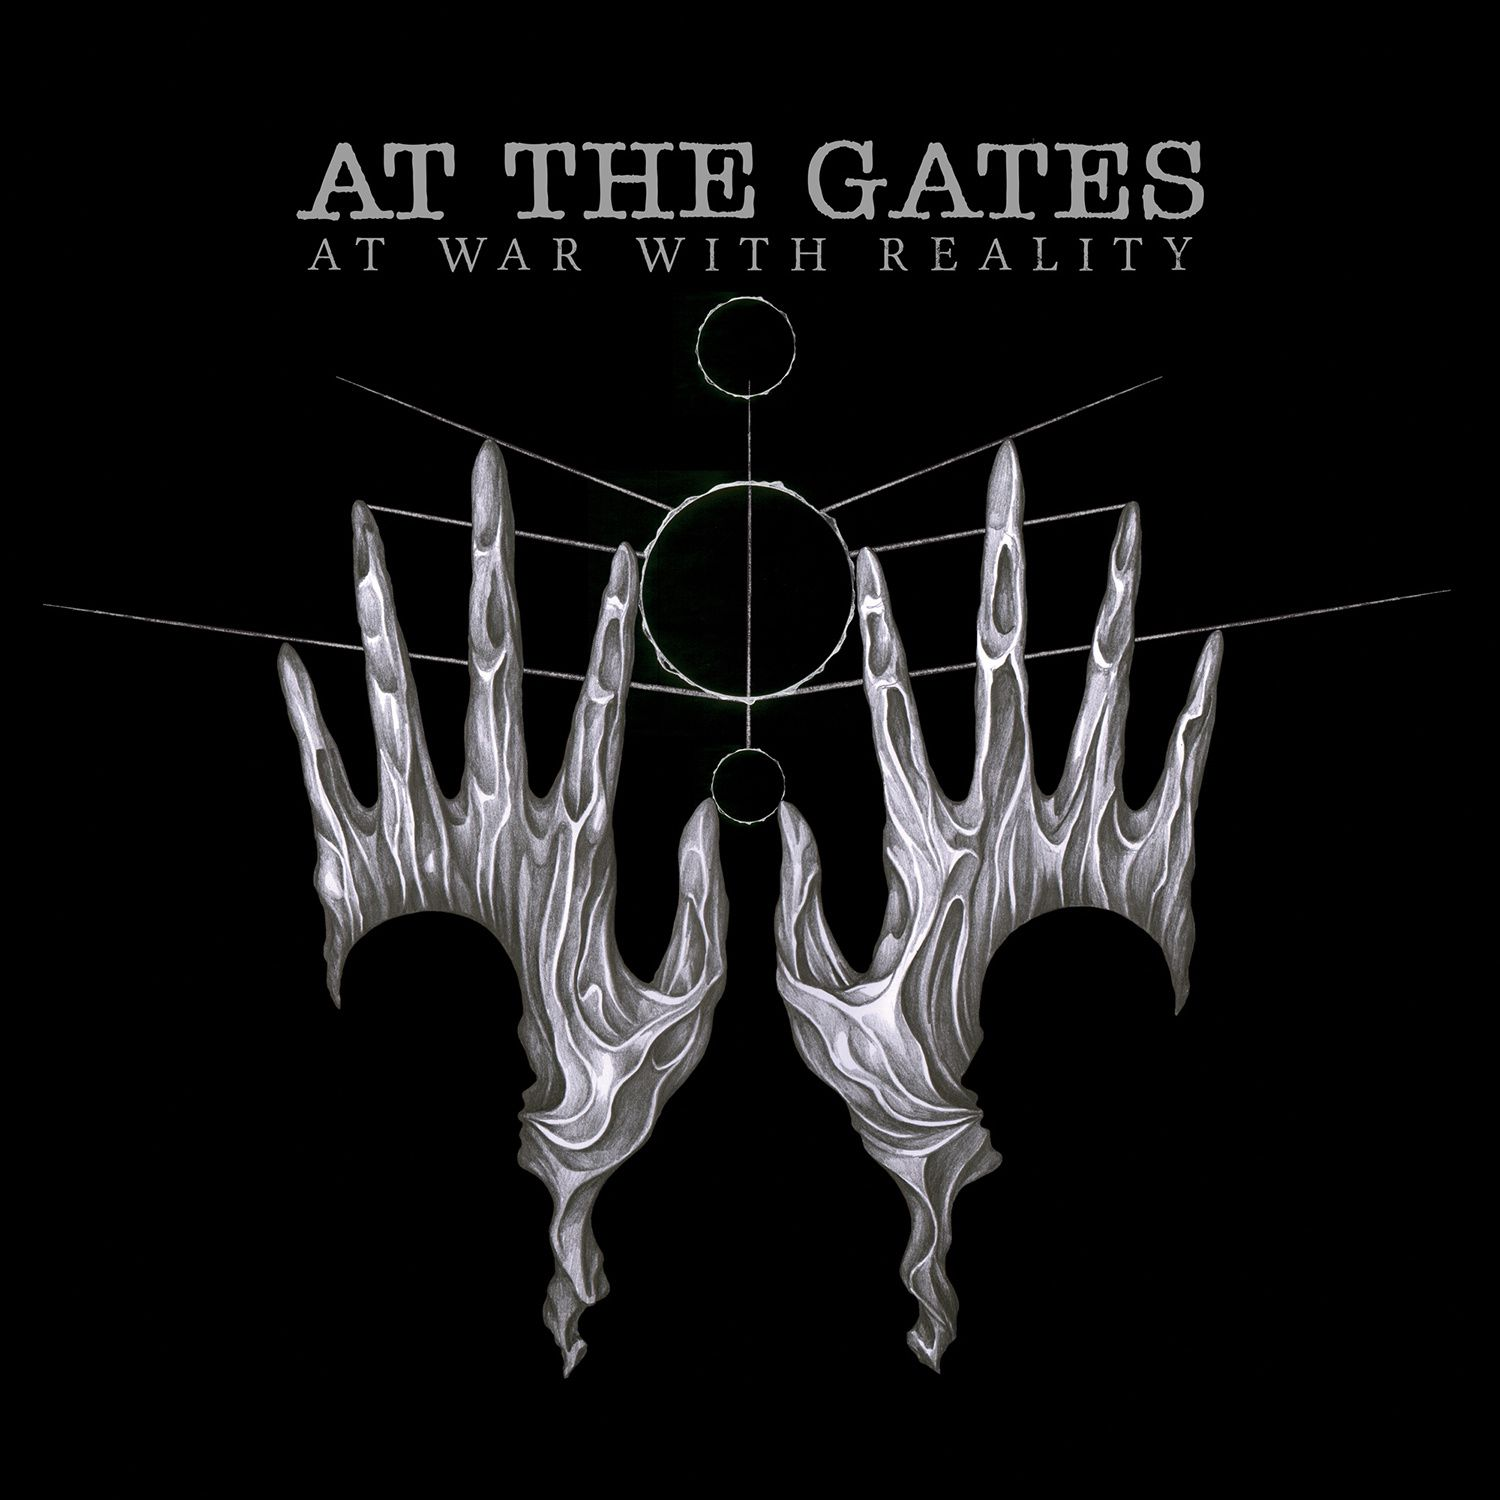 AT THE GATES reveal cover from the upcoming album